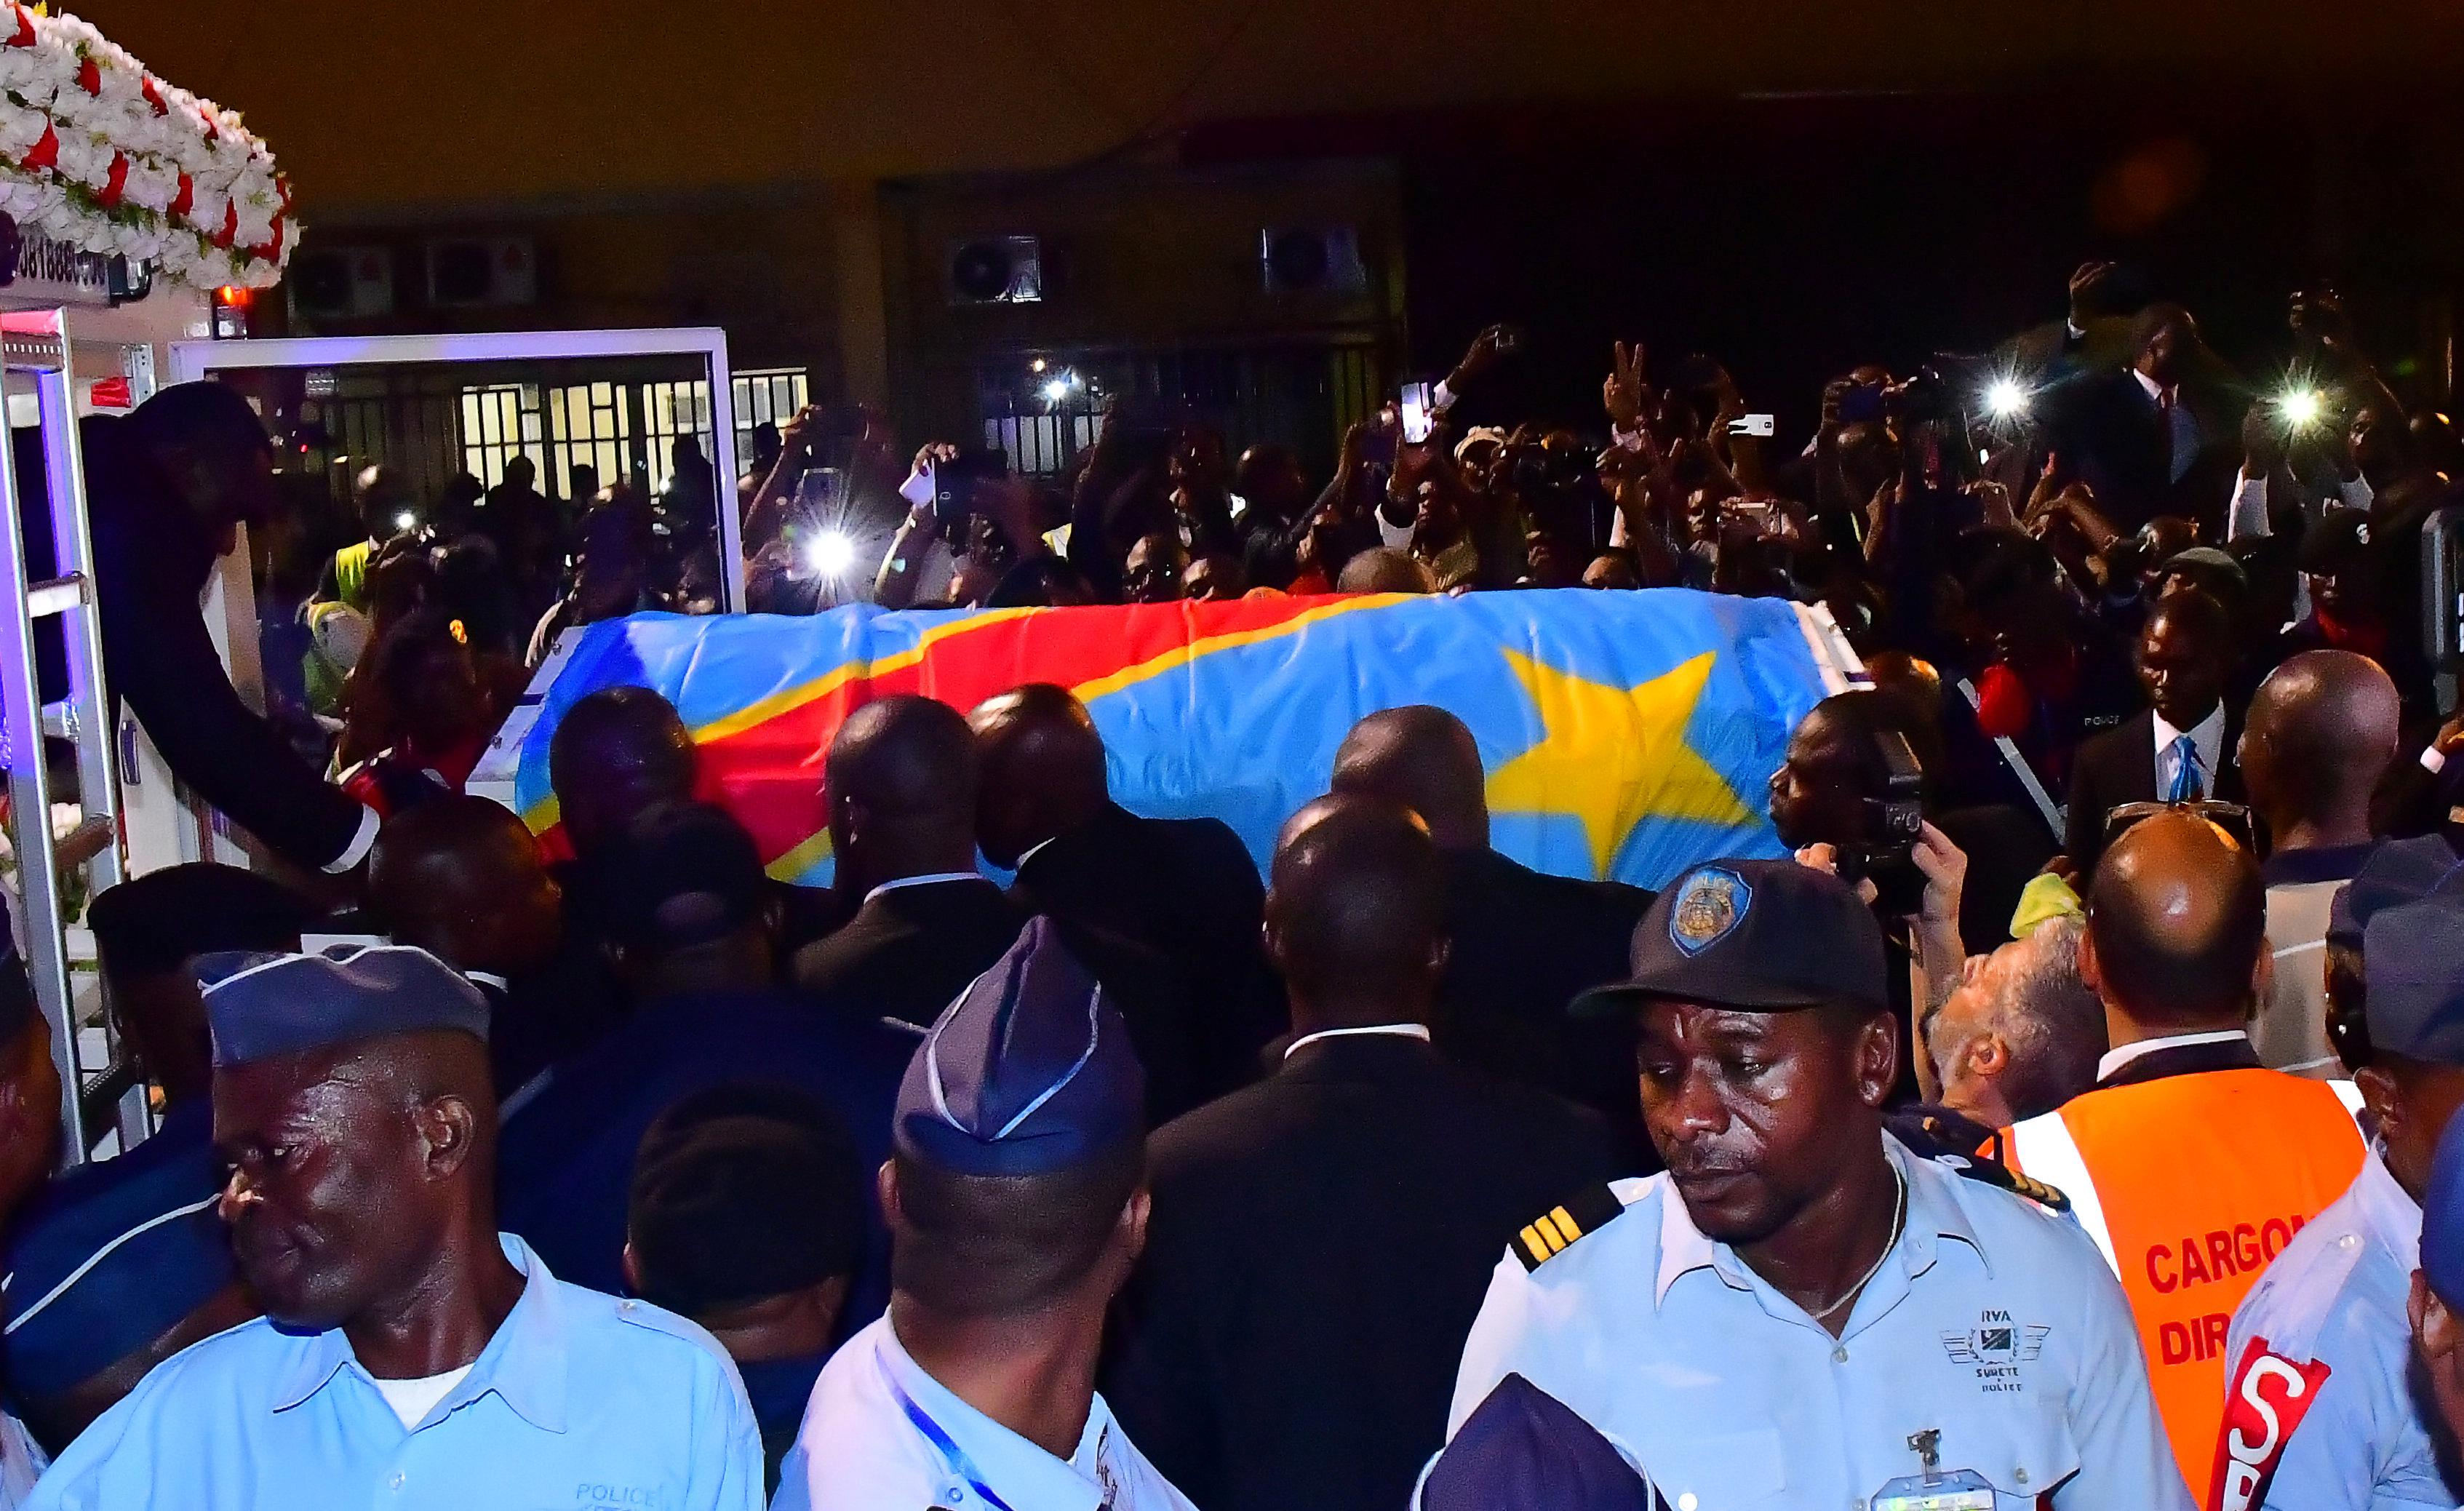 Body of Etienne Tshisekedi returns to Congo two years after death